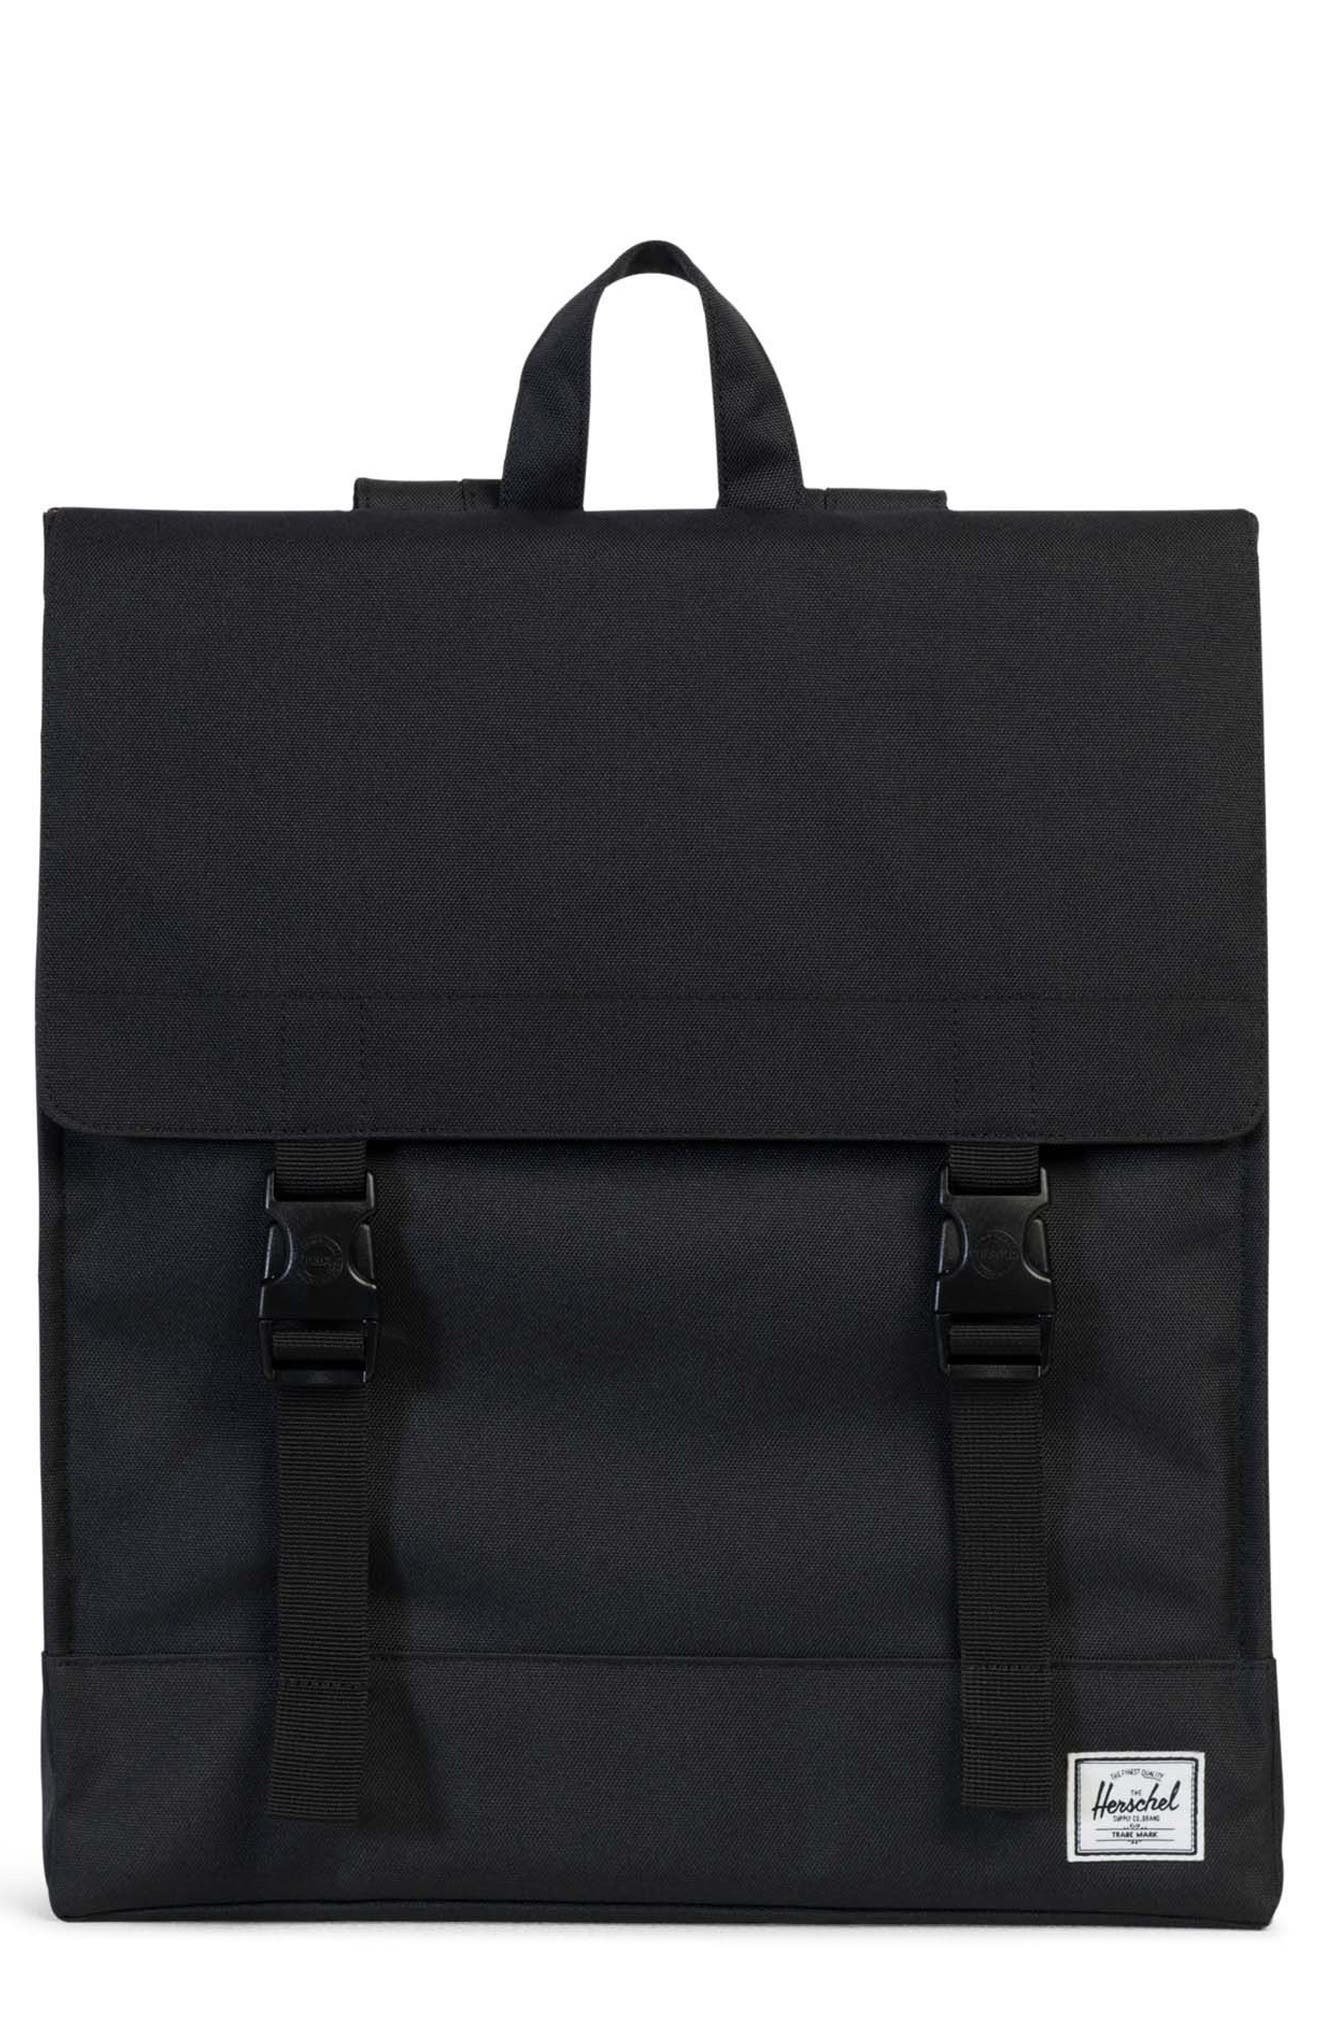 Survey Backpack,                         Main,                         color, Black